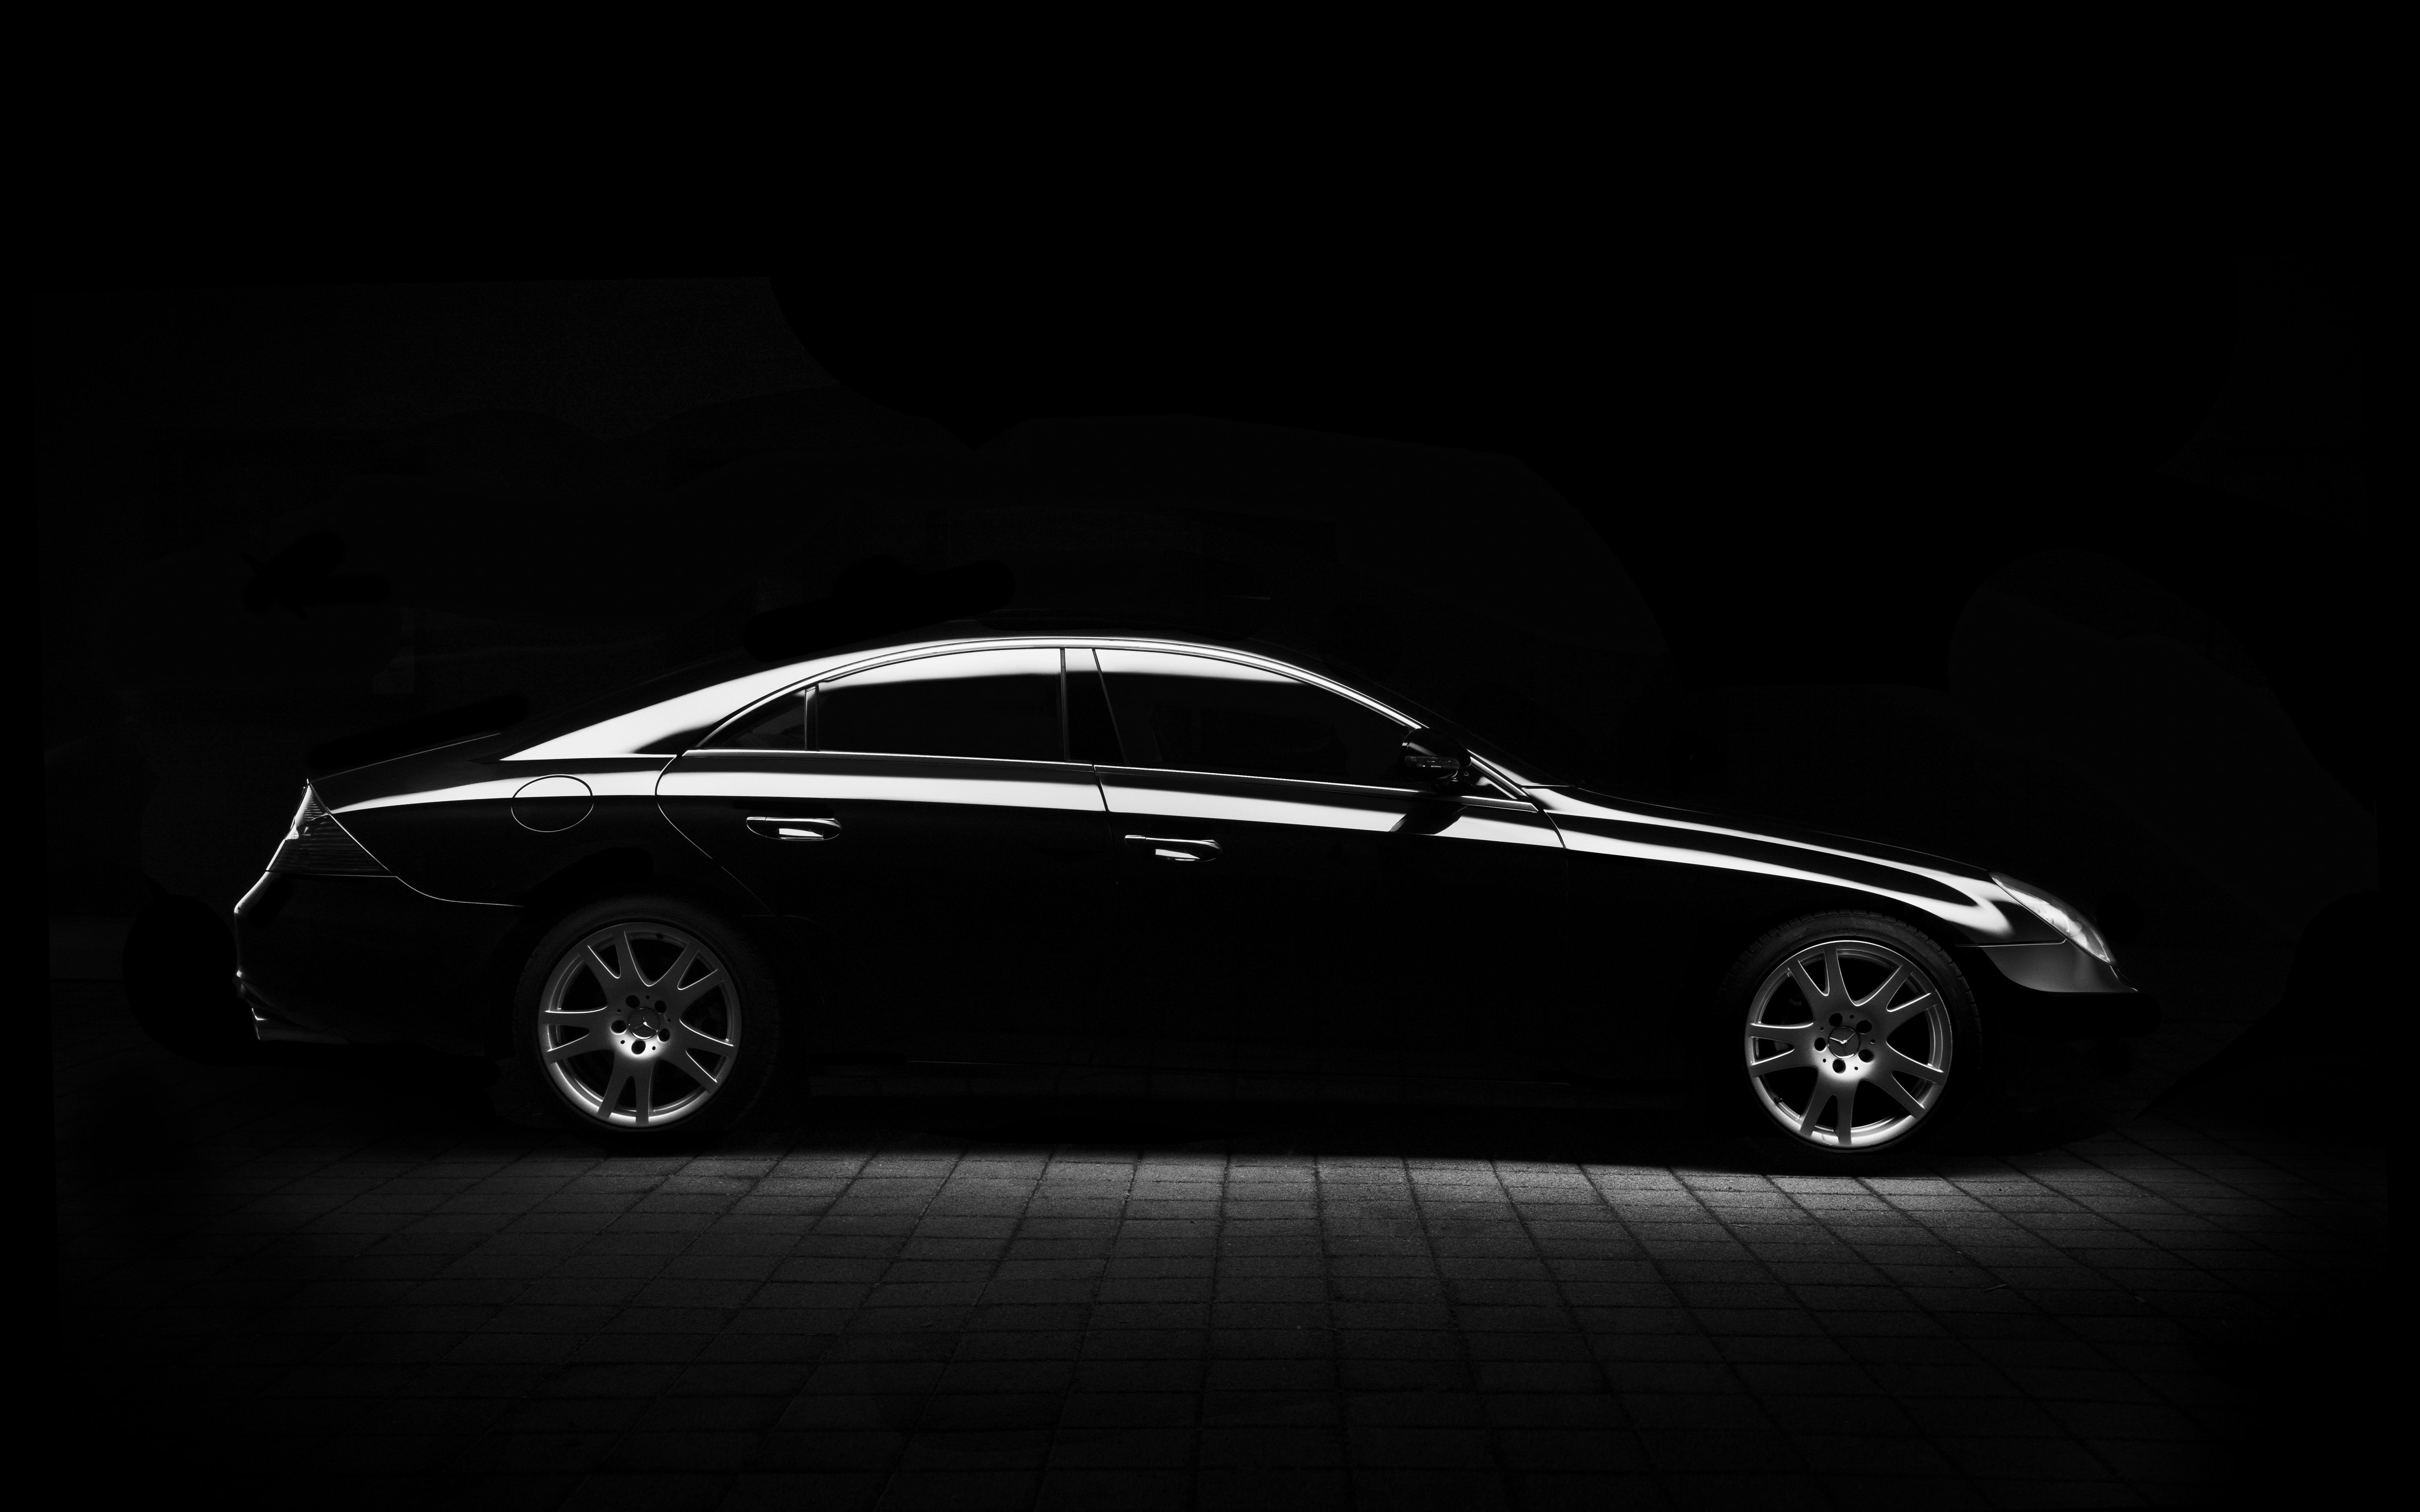 Beautiful Black And White Shot Of Black Mercedes Benz Saloon Car On Pavement At Night